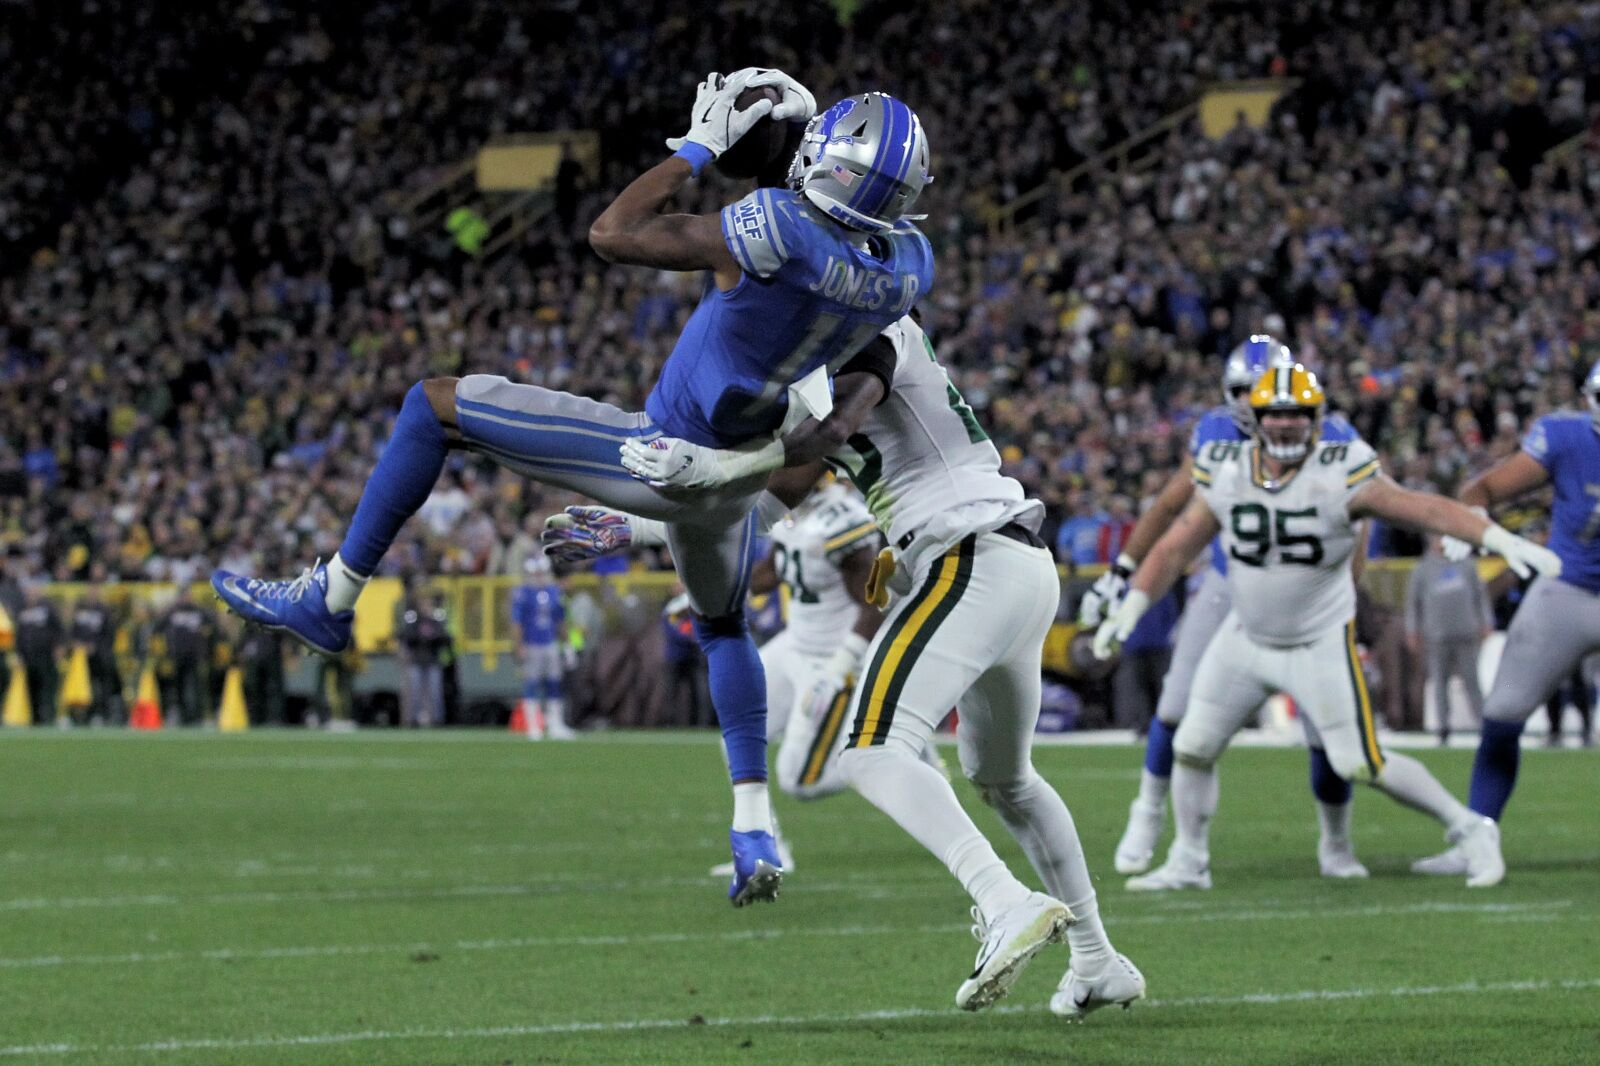 Detroit Lions: 3 Takeaways from loss to Packers not related to officiating